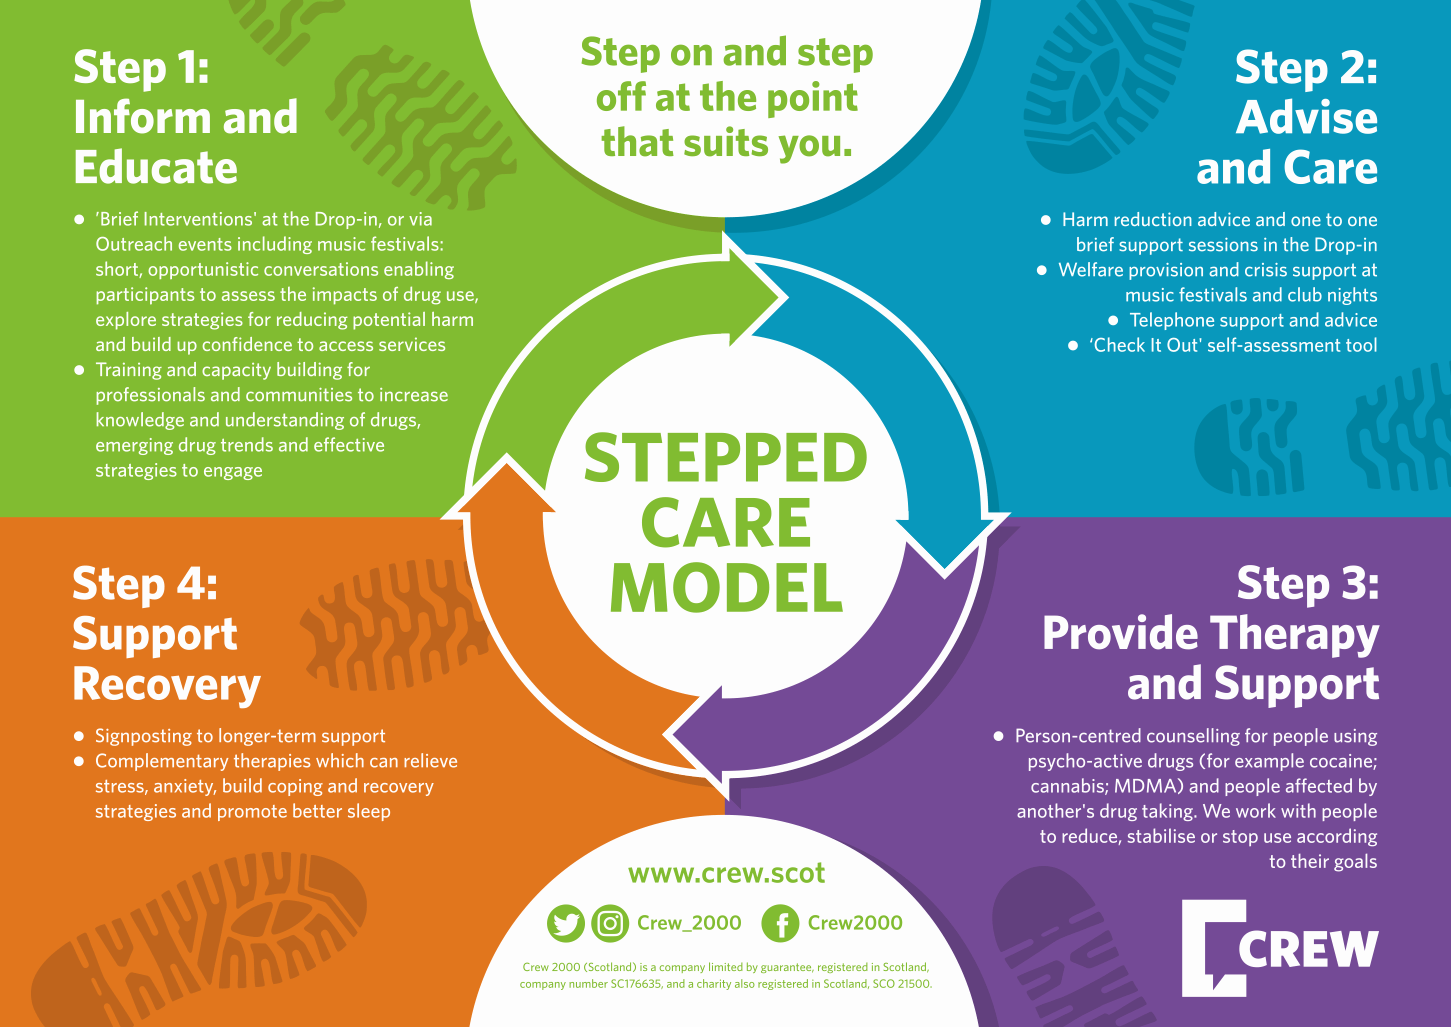 stepped care model diagram